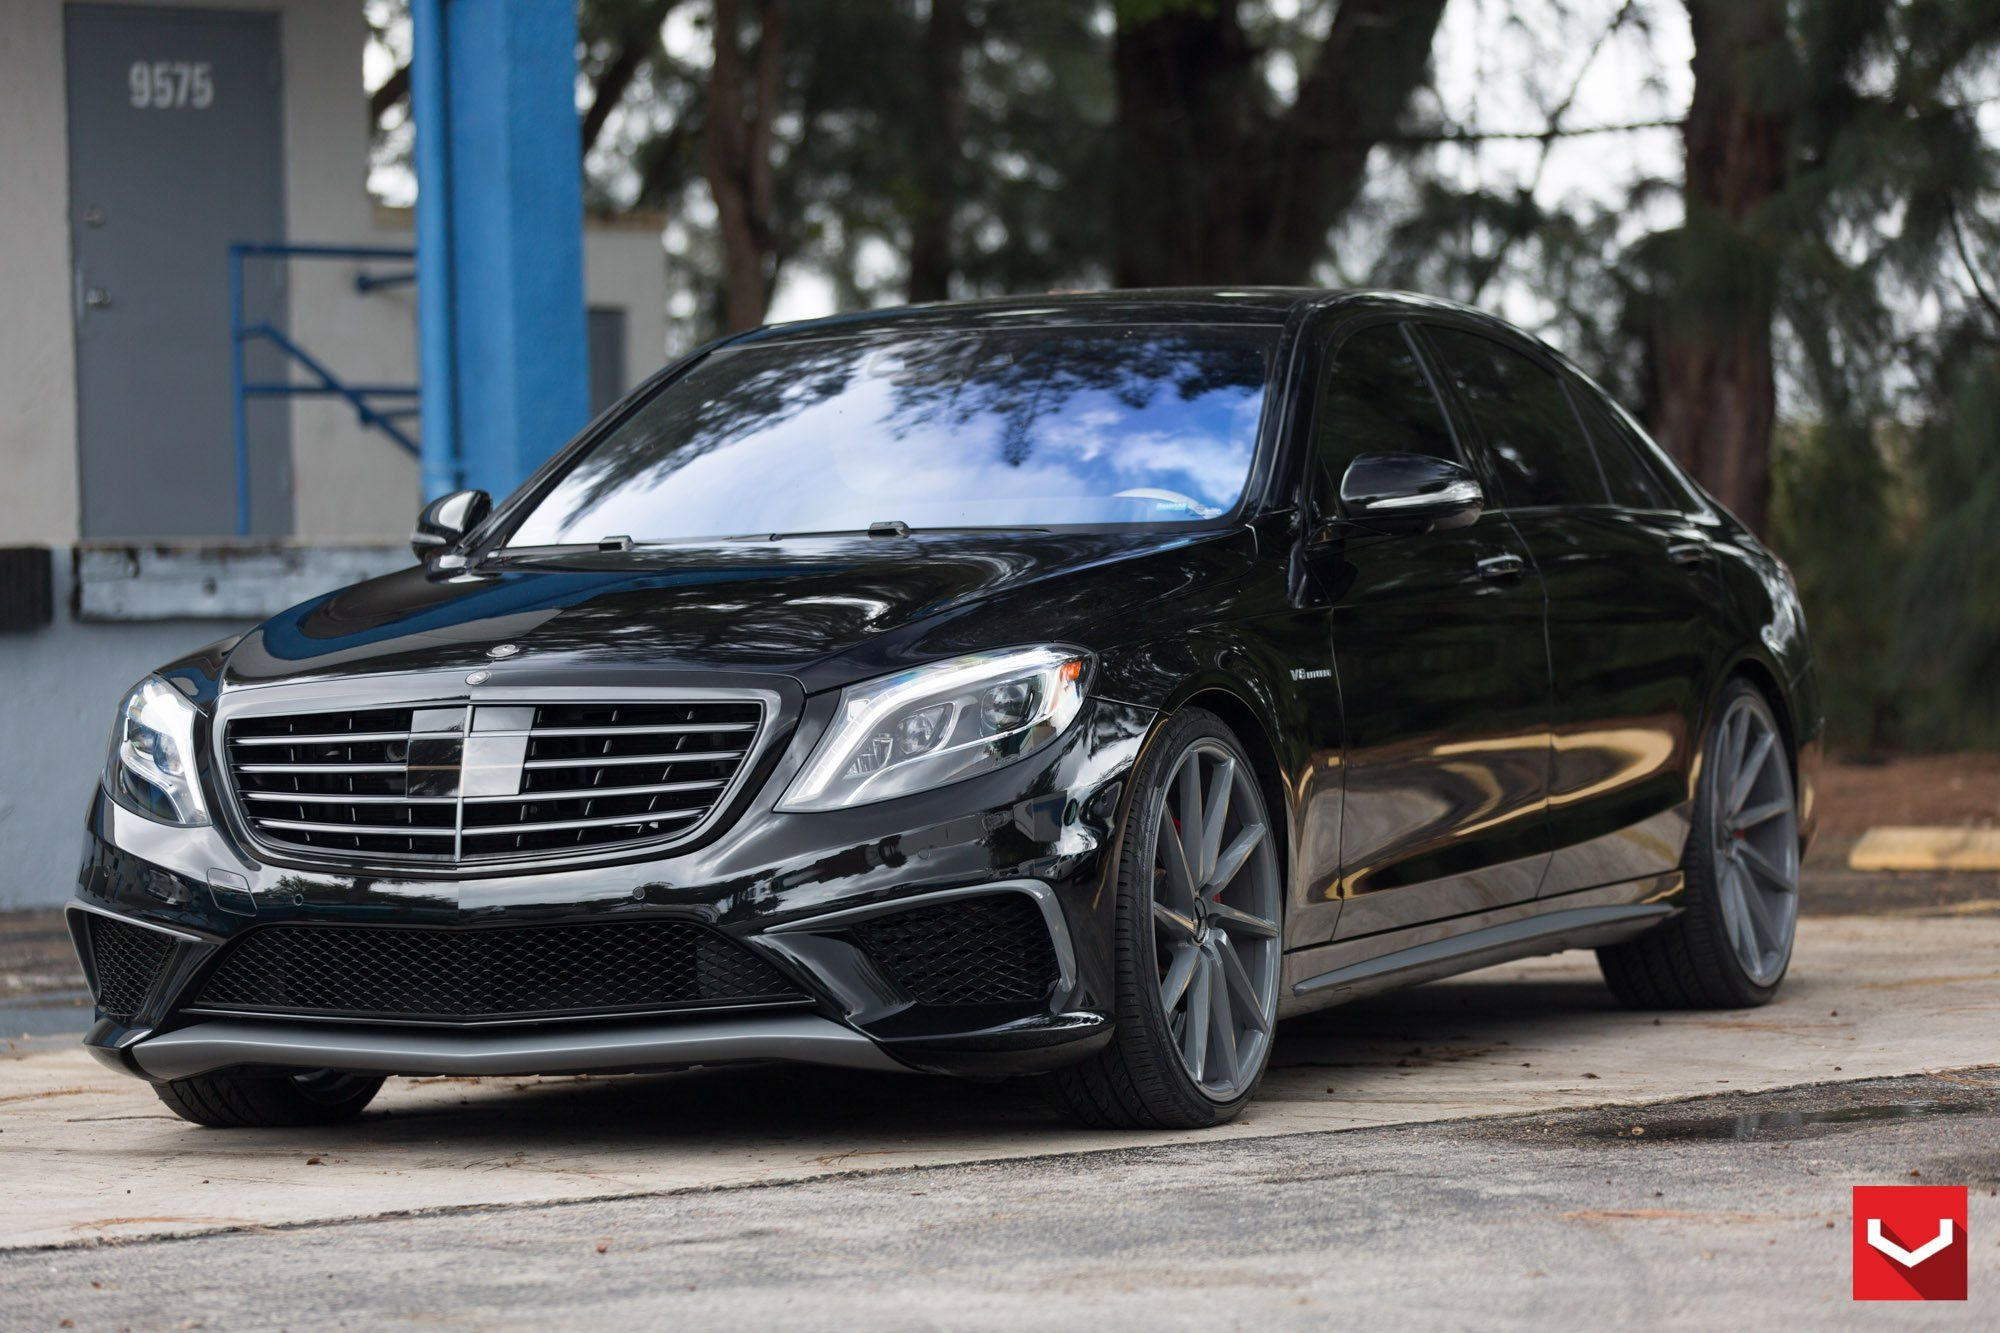 Black Mercedes S Class V8 Boasting Custom Blacked Out Grille